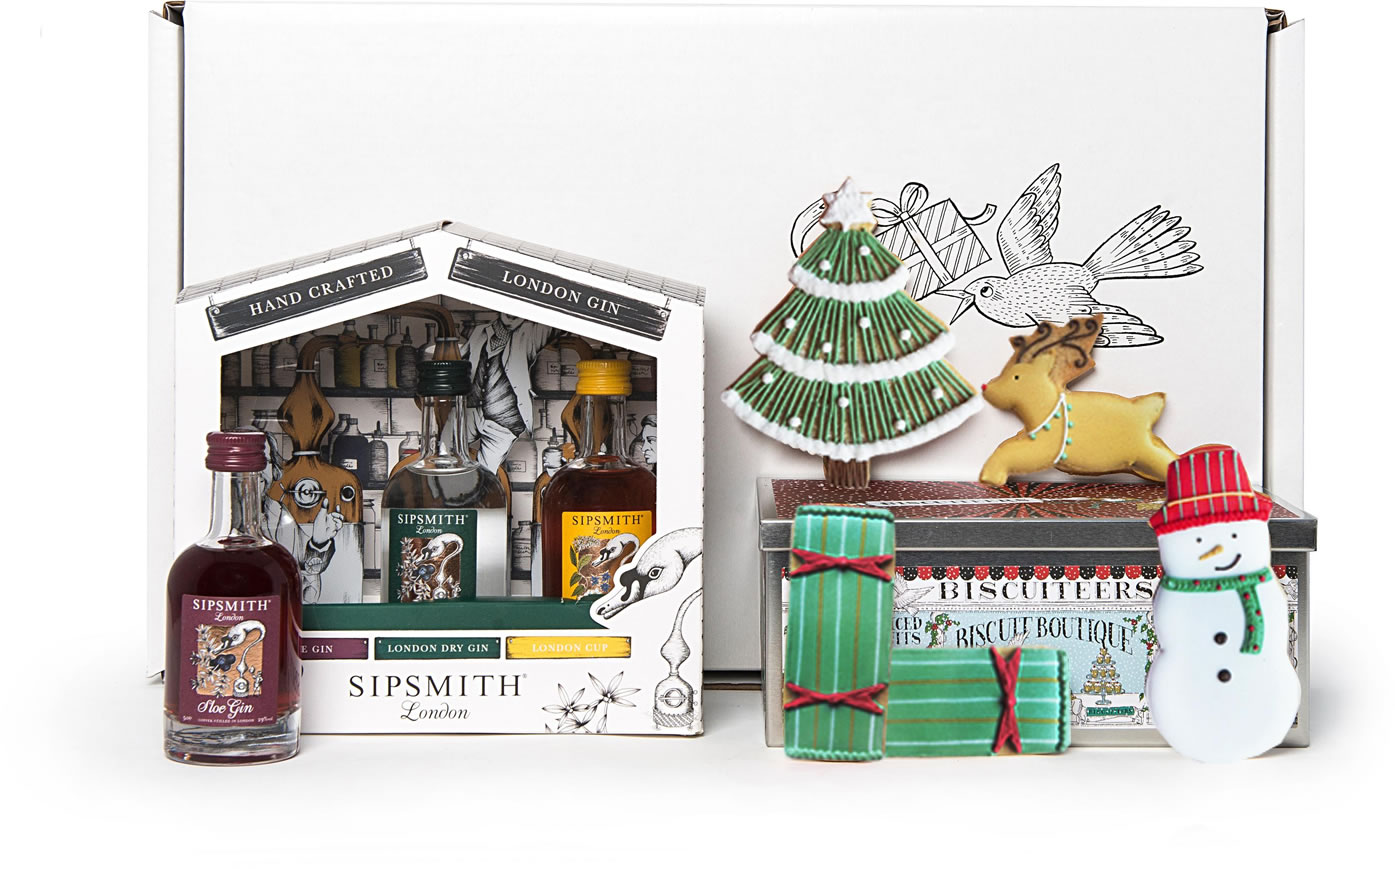 Image Of Biscuiteers Biscuits And Gin Gift Set